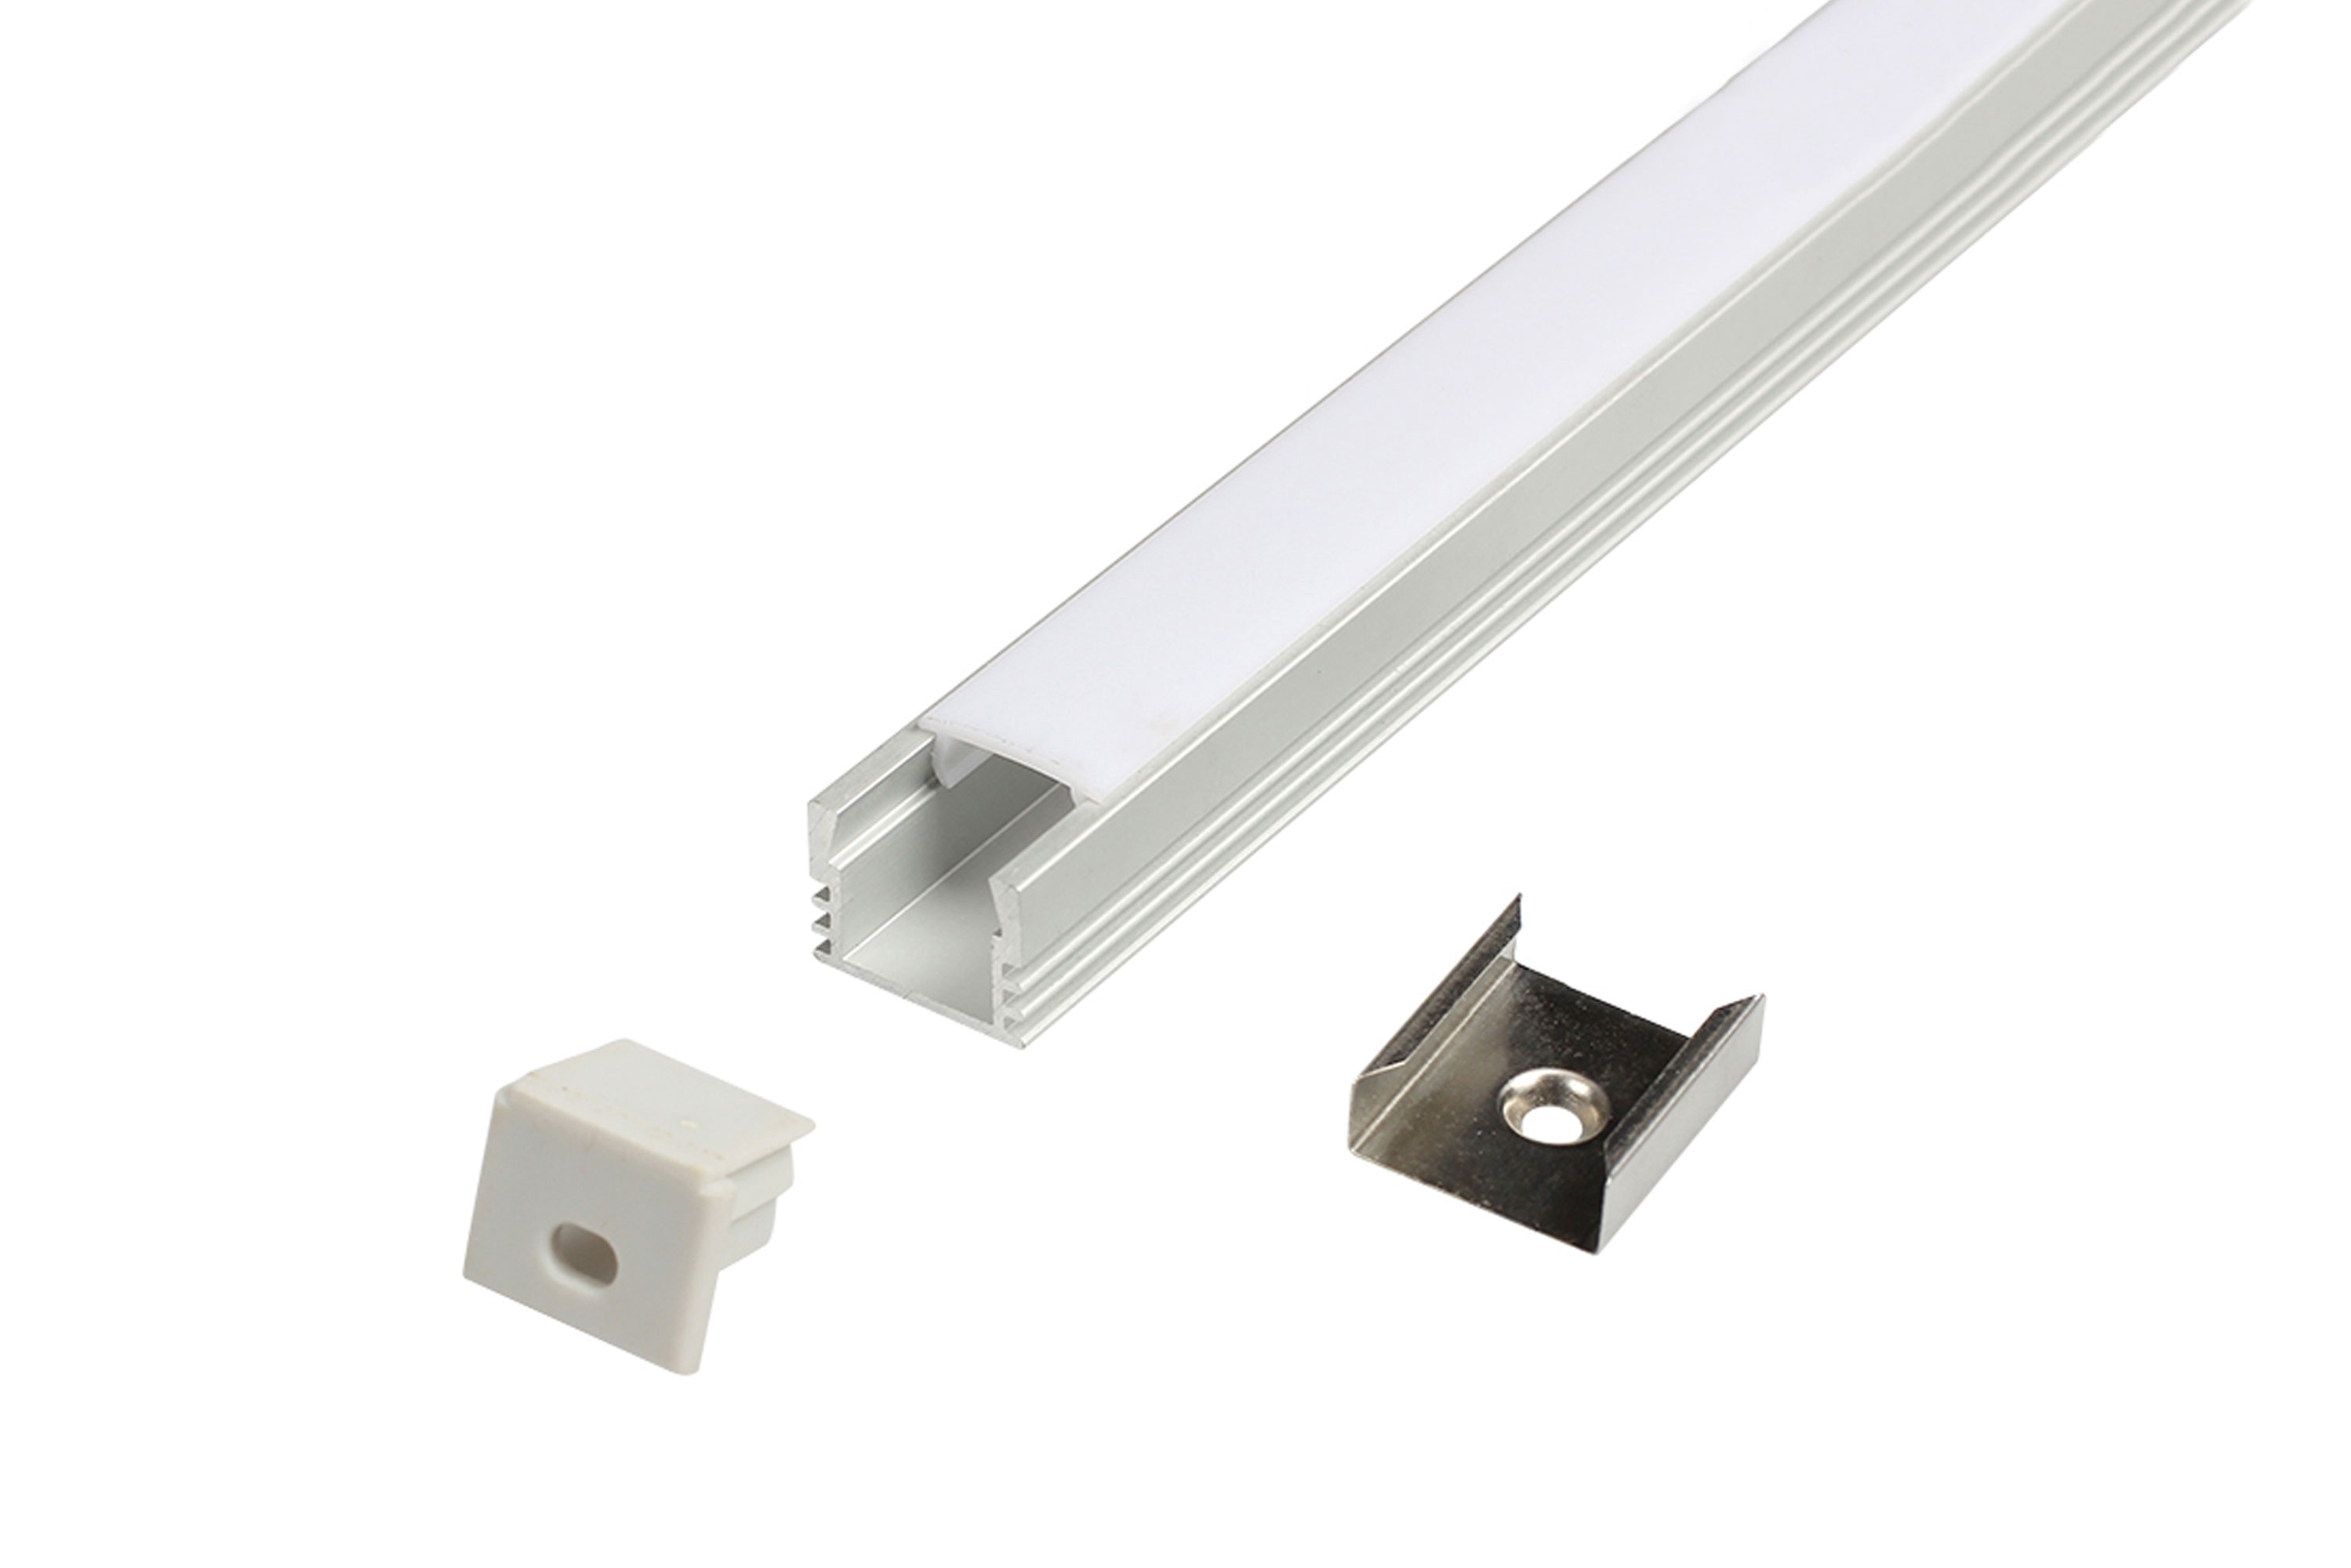 lightline-eko-mini-square-2